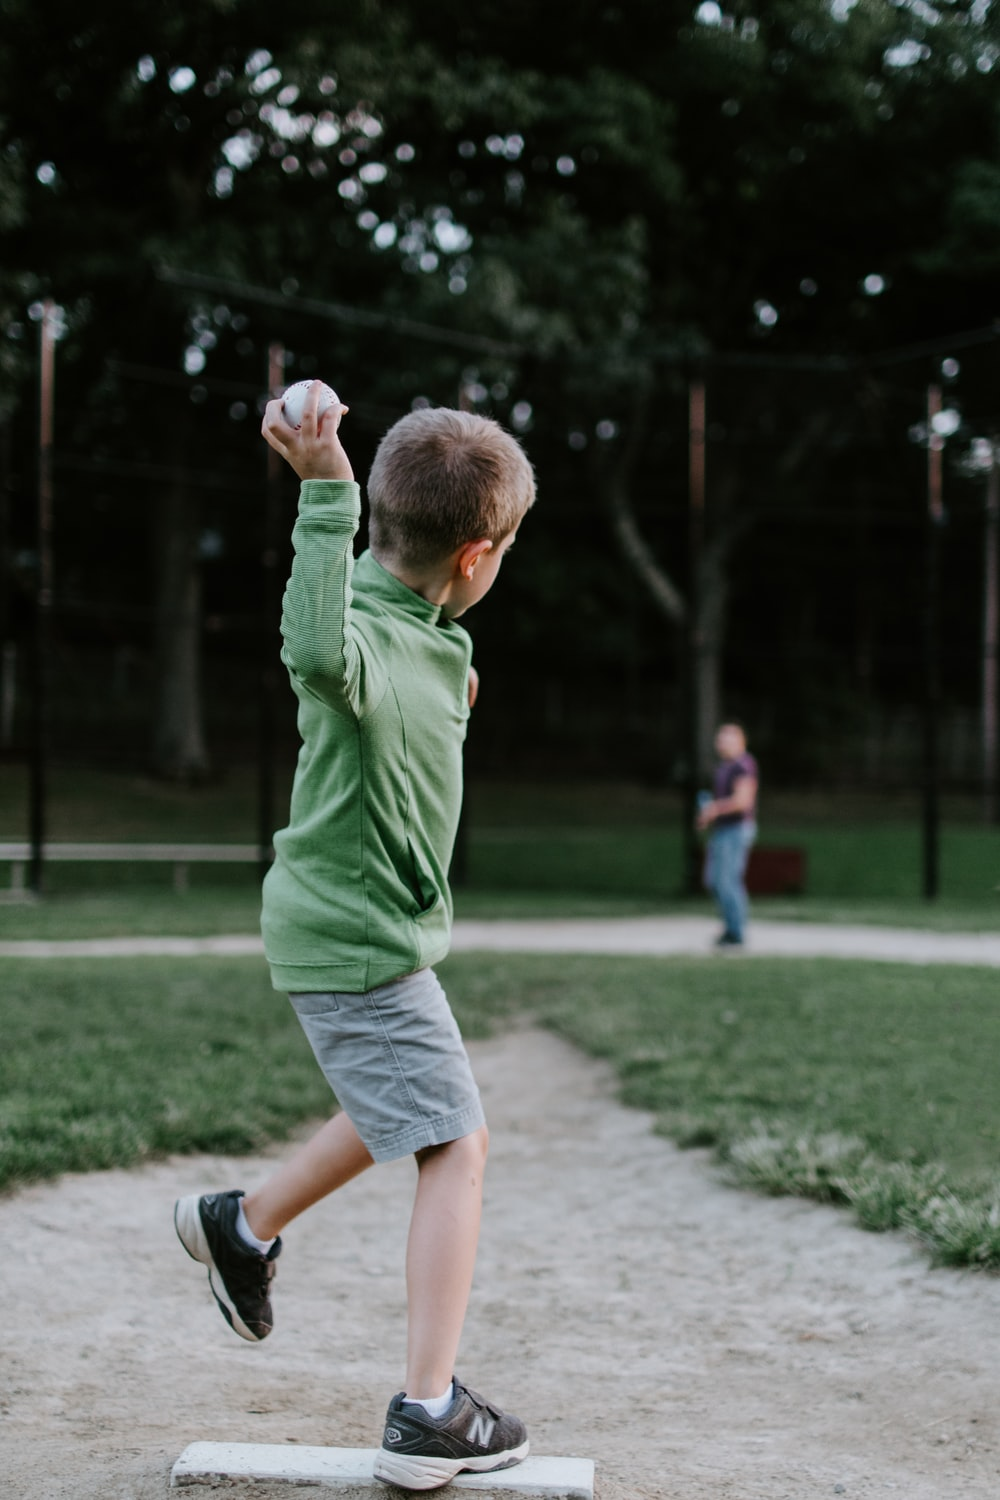 boy about to throw ball outdoors